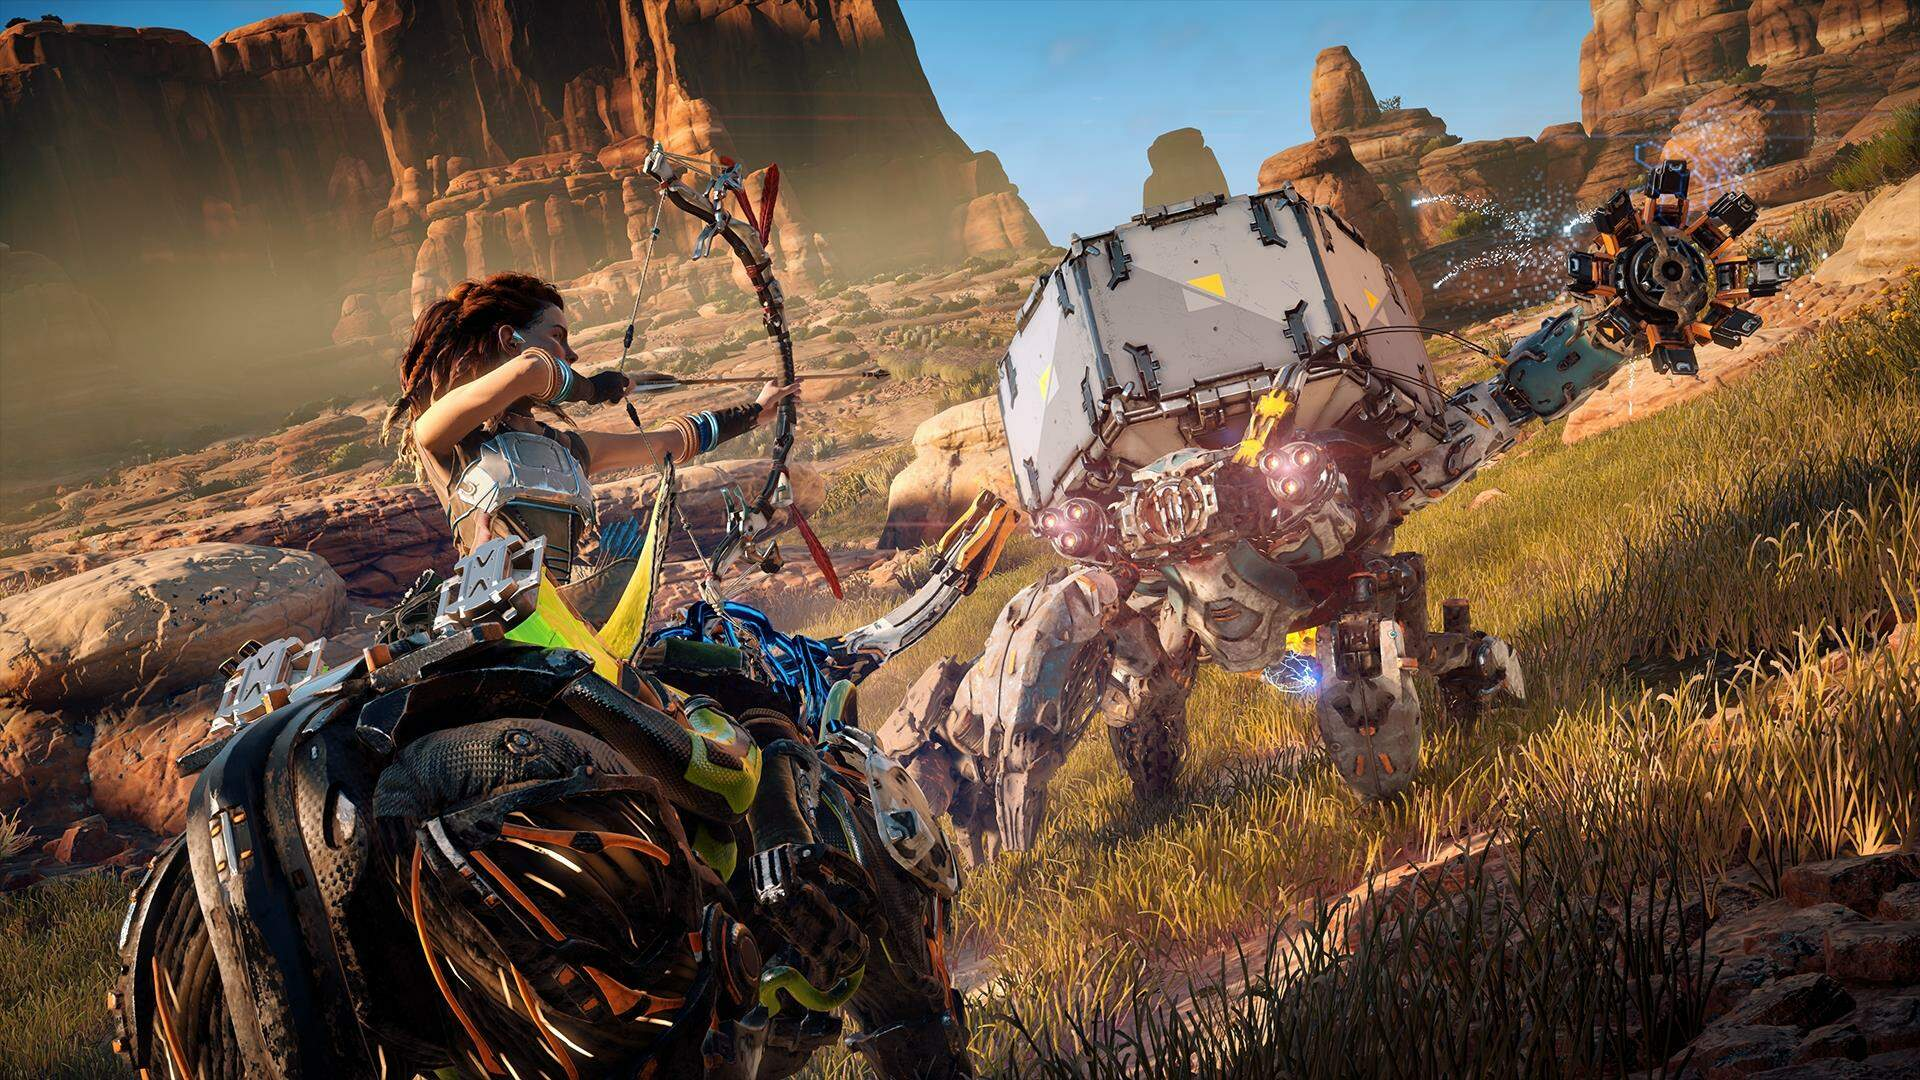 Horizon Zero Dawn Guide: How to Override Machines and Ride Mounts